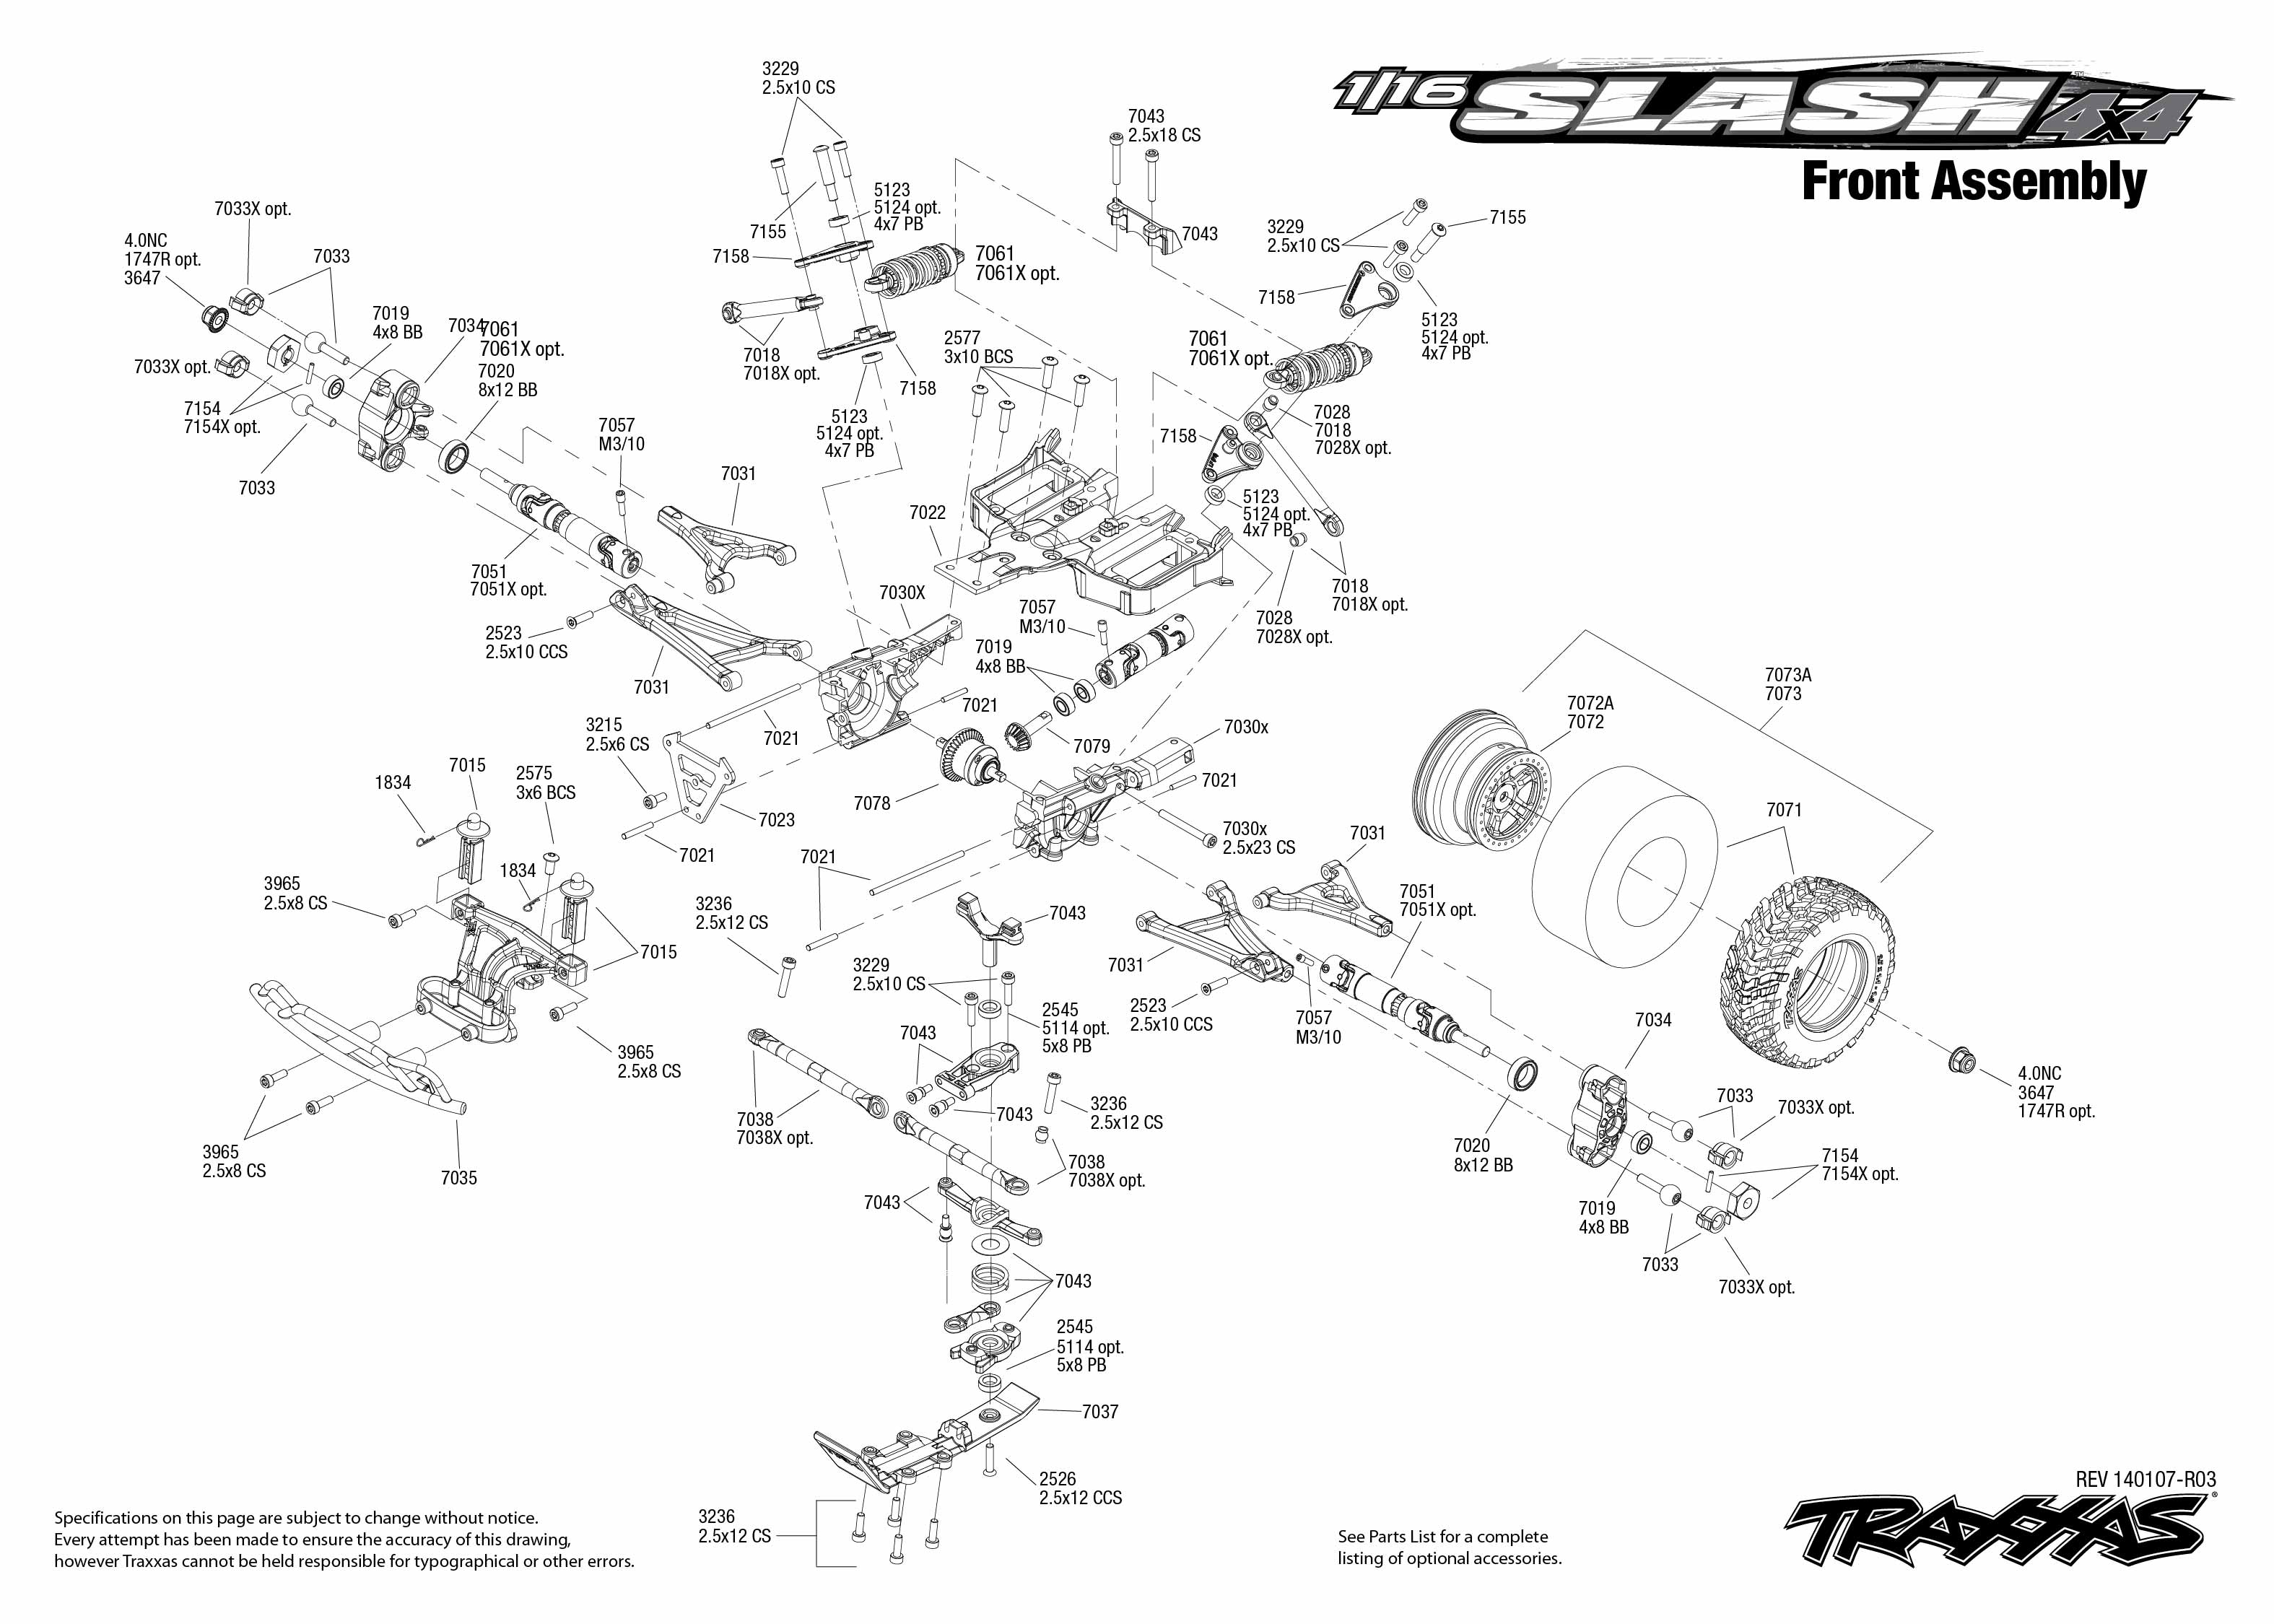 Traxxas Rustler Auto Electrical Wiring Diagram Download 1834 Body Clips 1 90 1951 Half Shaft Related With